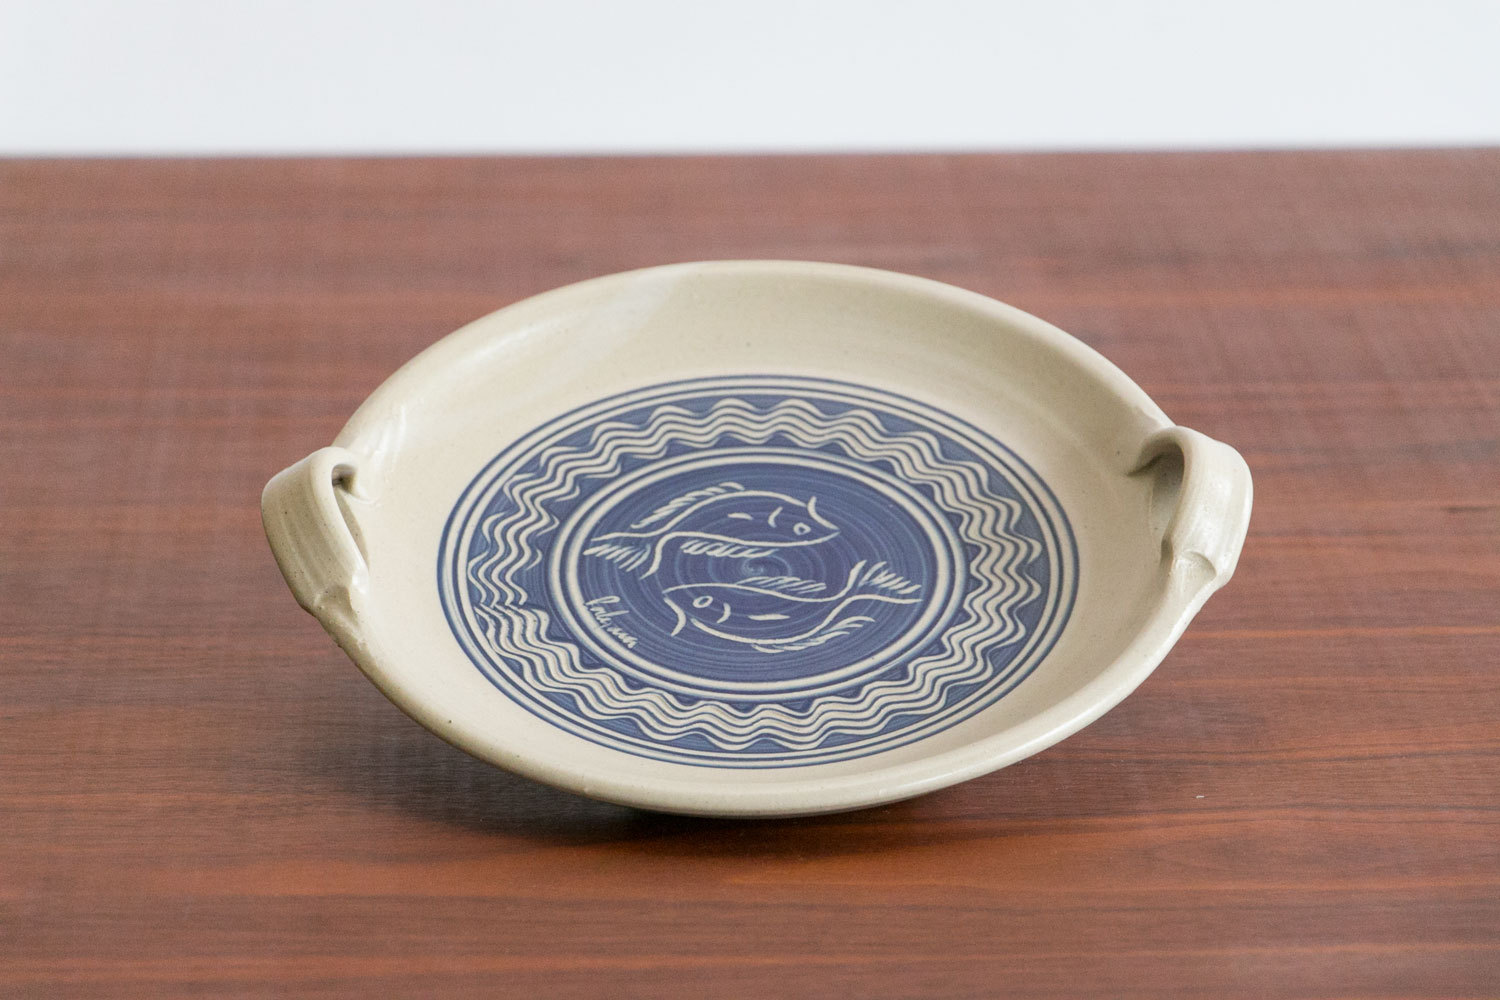 "Vintage Mid Century Stoneware Serving Platter w Fish Motif //  10.5"" // Sculpted Handles // Studio Pottery // Handmade"